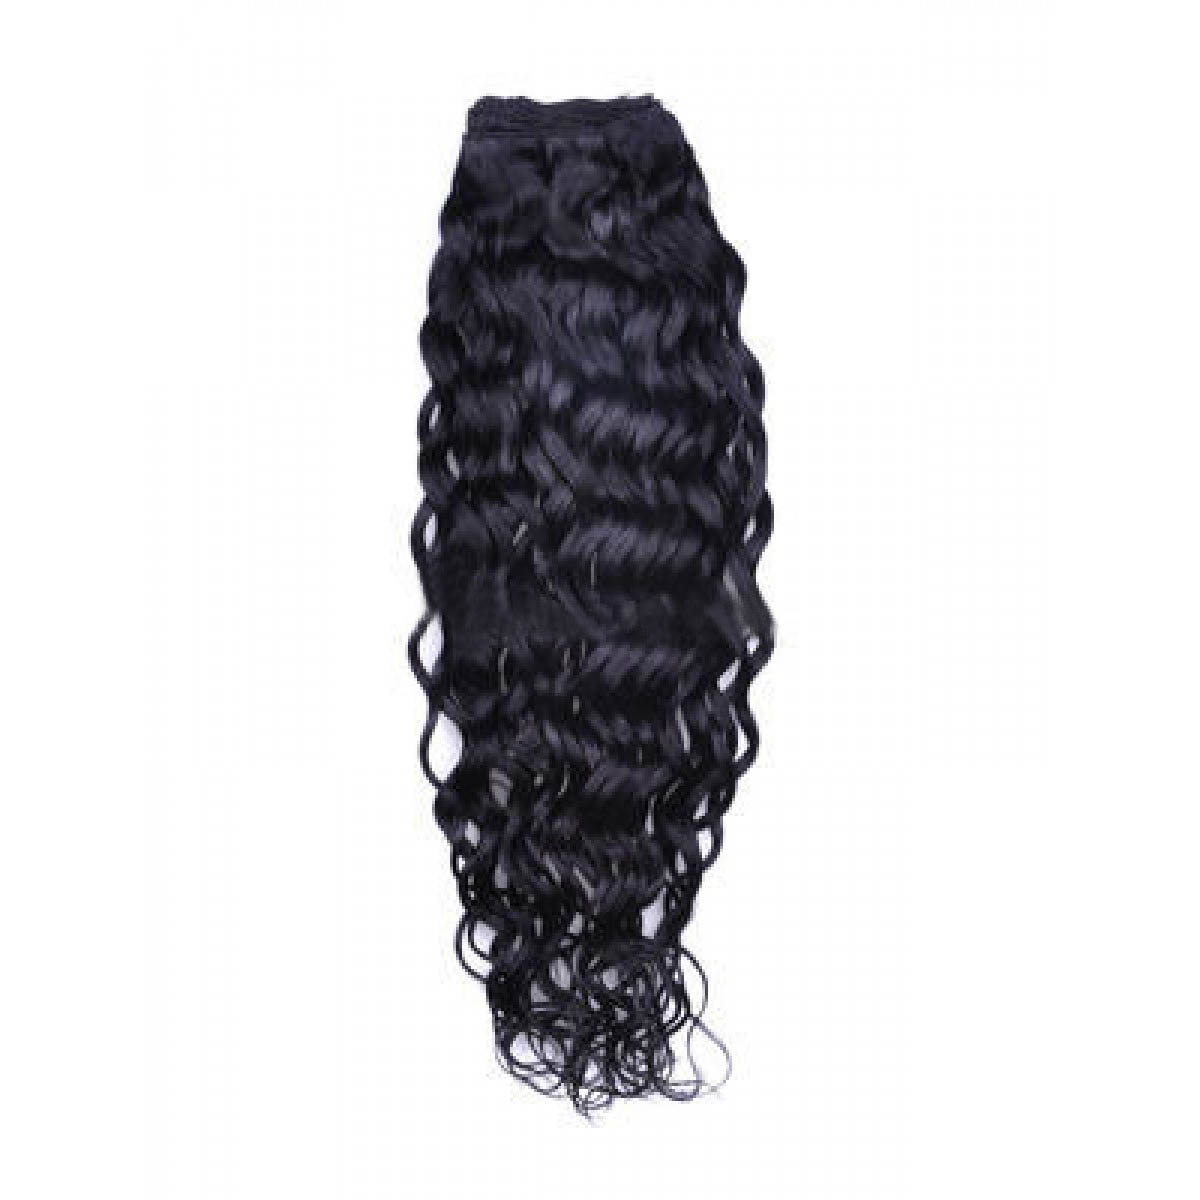 14 Inch #1b Natural Black Curly Brazilian Virgin Hair Wefts no 1